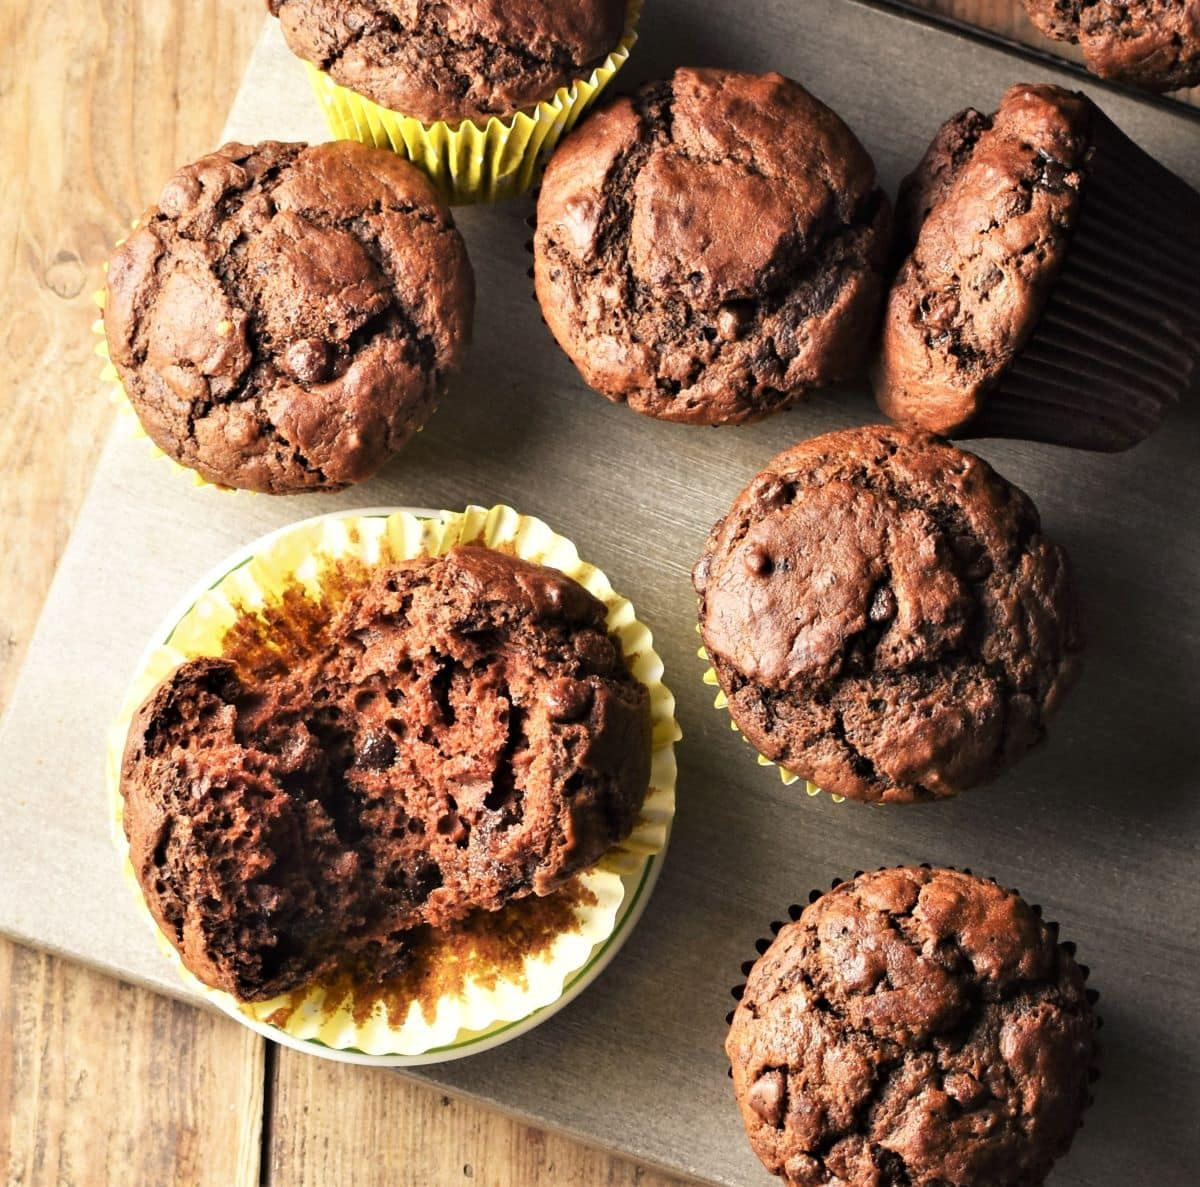 Pumpkin chocolate muffins in paper liners on top of grey board.